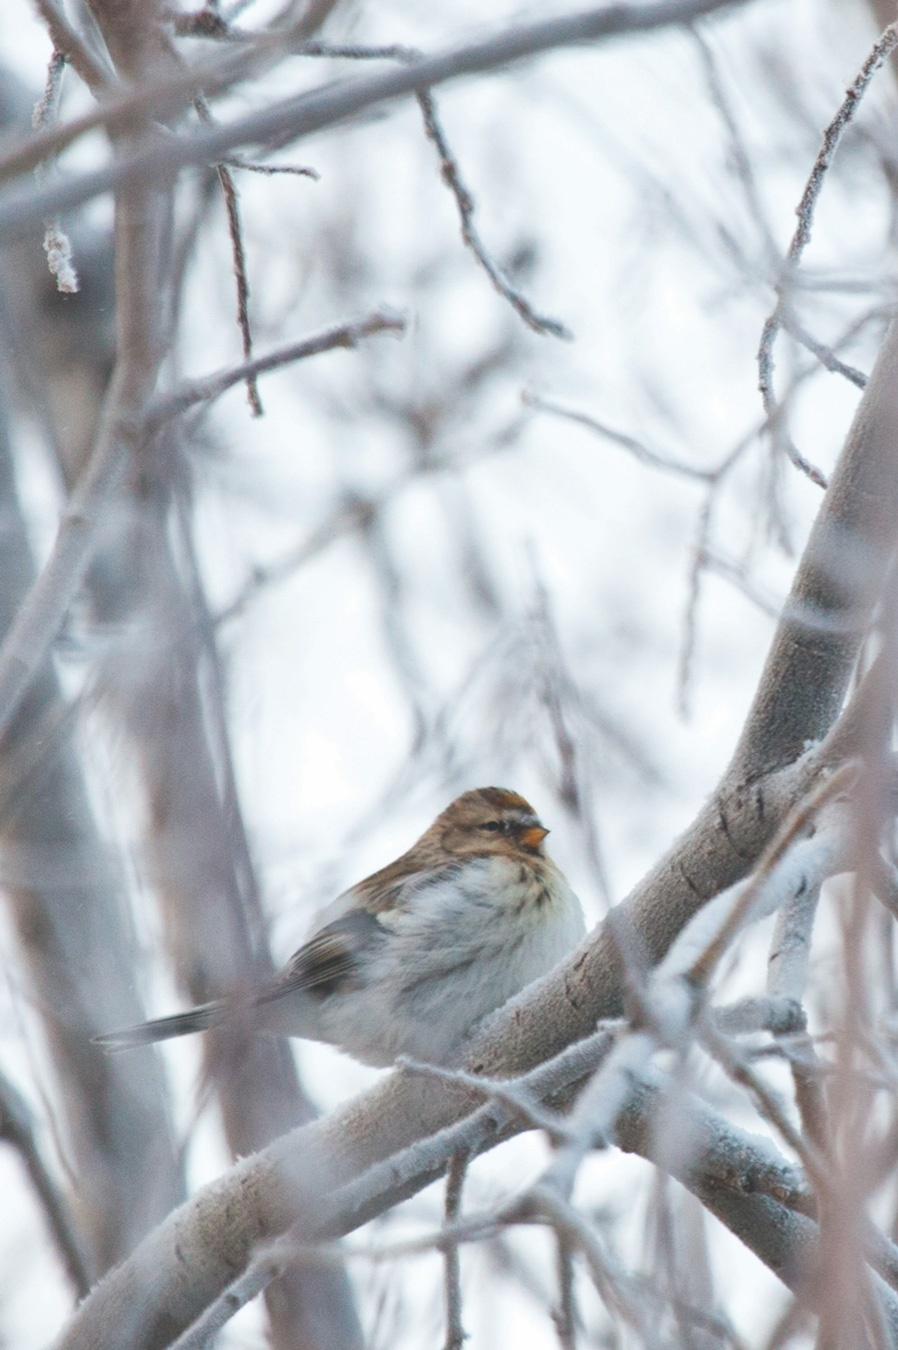 A fluffy looking songbird perched on a frosty tree branch in winter.